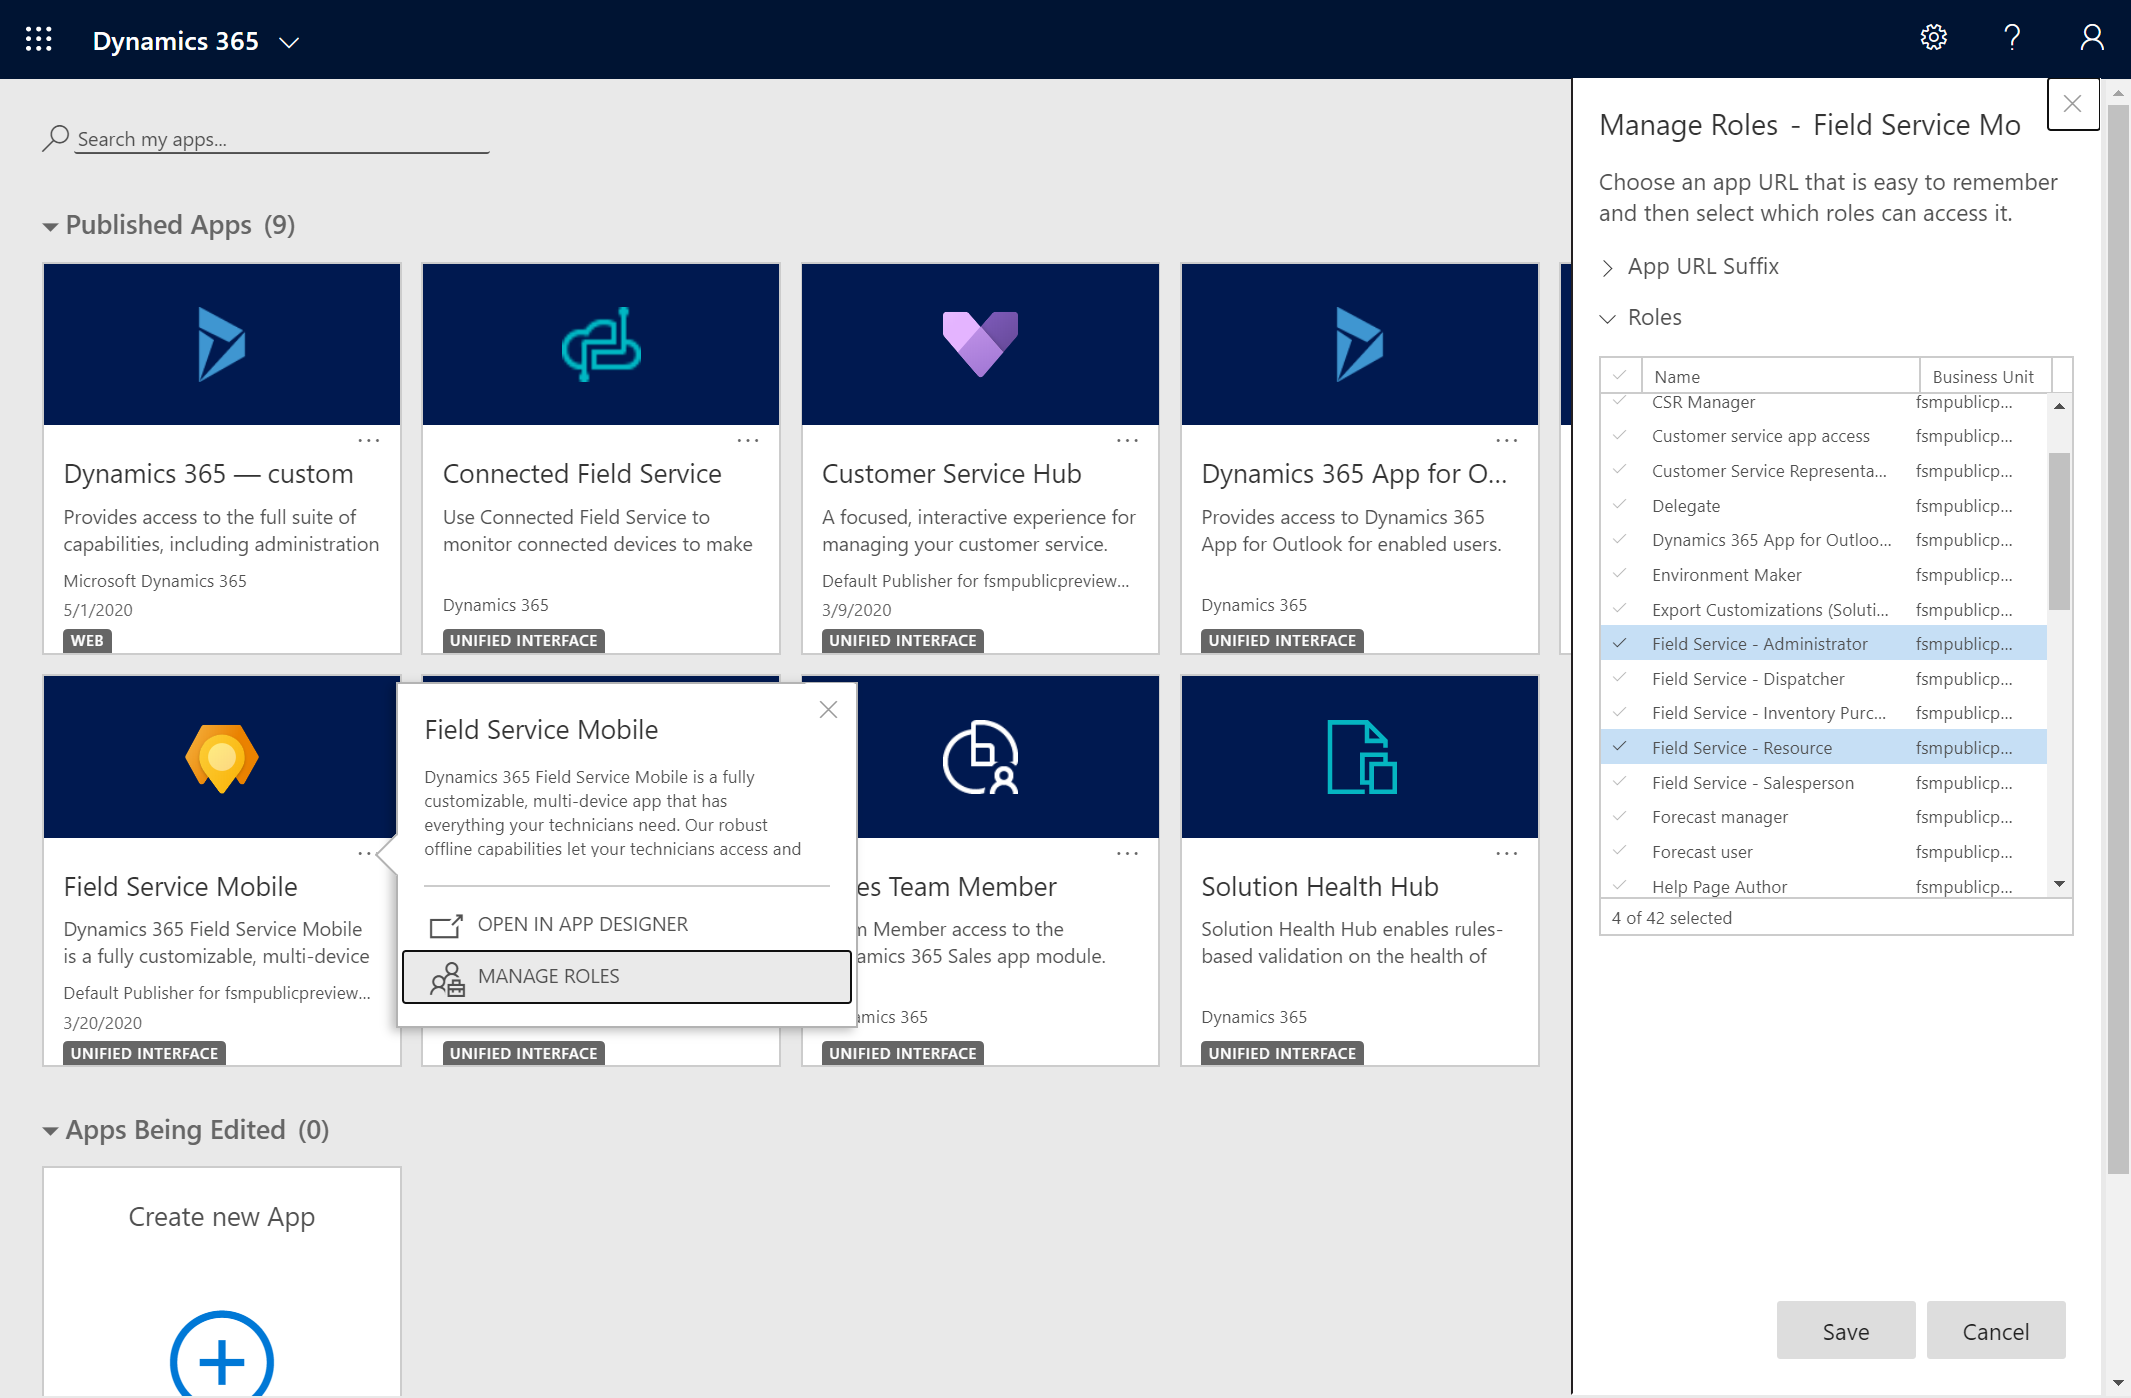 Screenshot of the Dynamics 365 list of apps, showing the Field Service Mobile solution in the list.